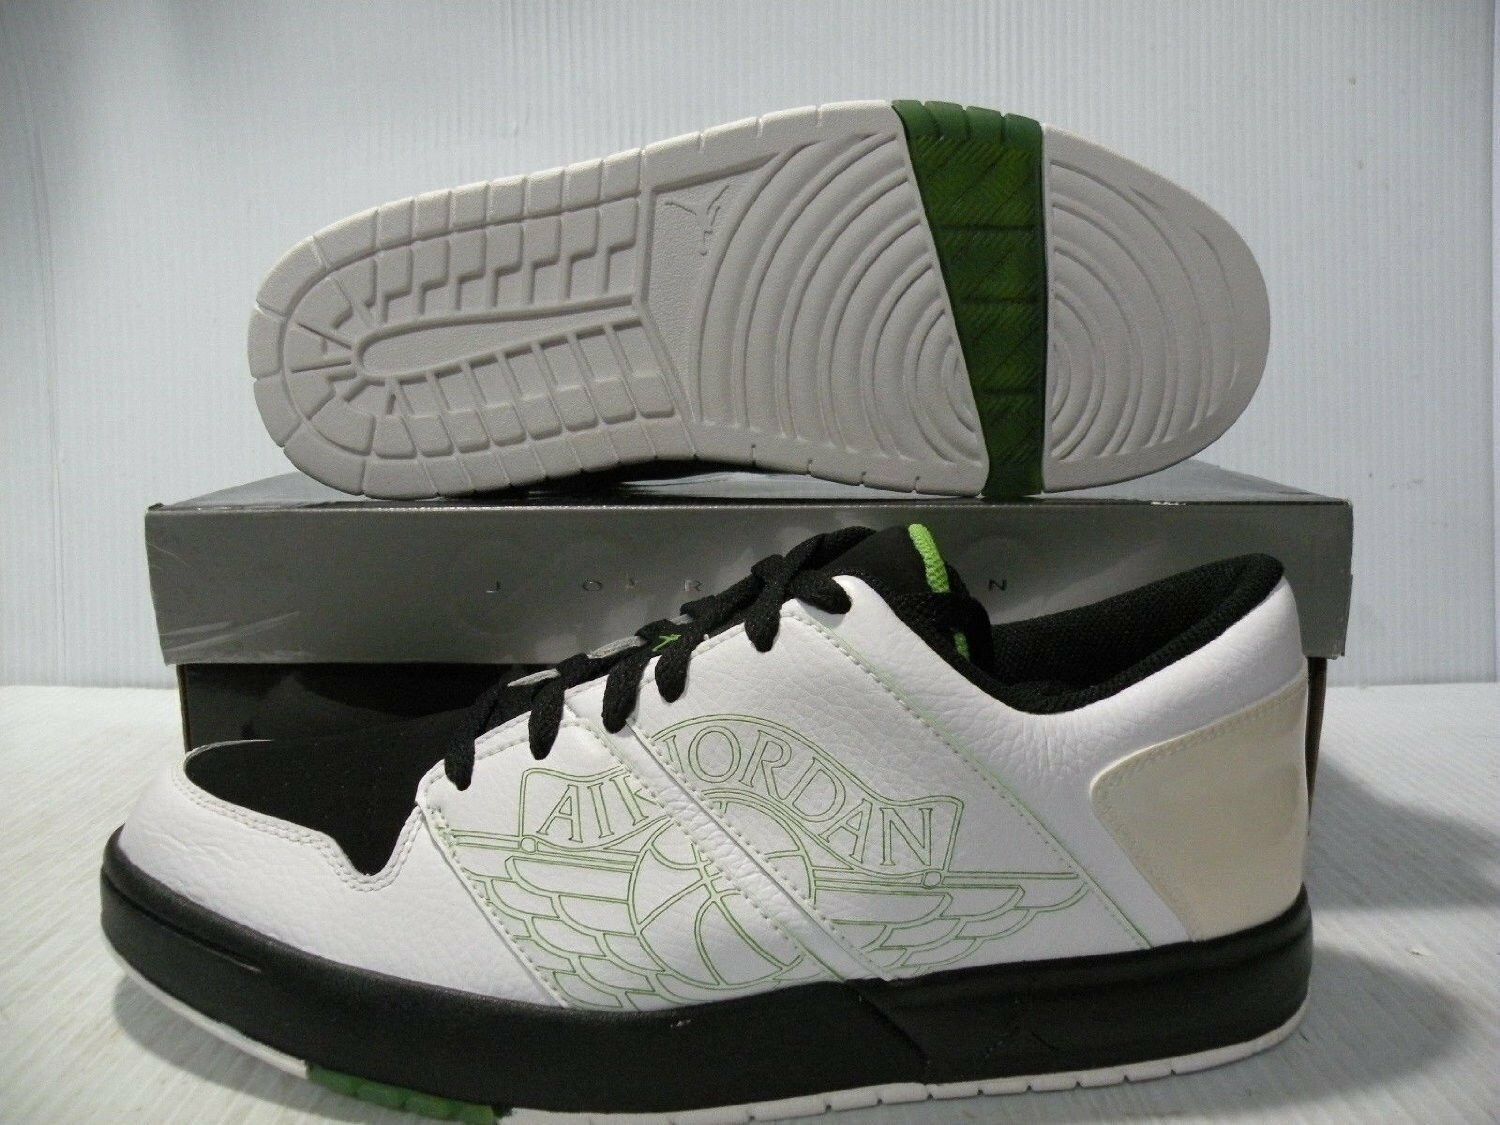 NIKE JORDAN NU RETRO 1 LO WHITE VINTAGE SNEAKERS MEN SHOES WHITE LO 317163-101 SZ 11 NEW f578af